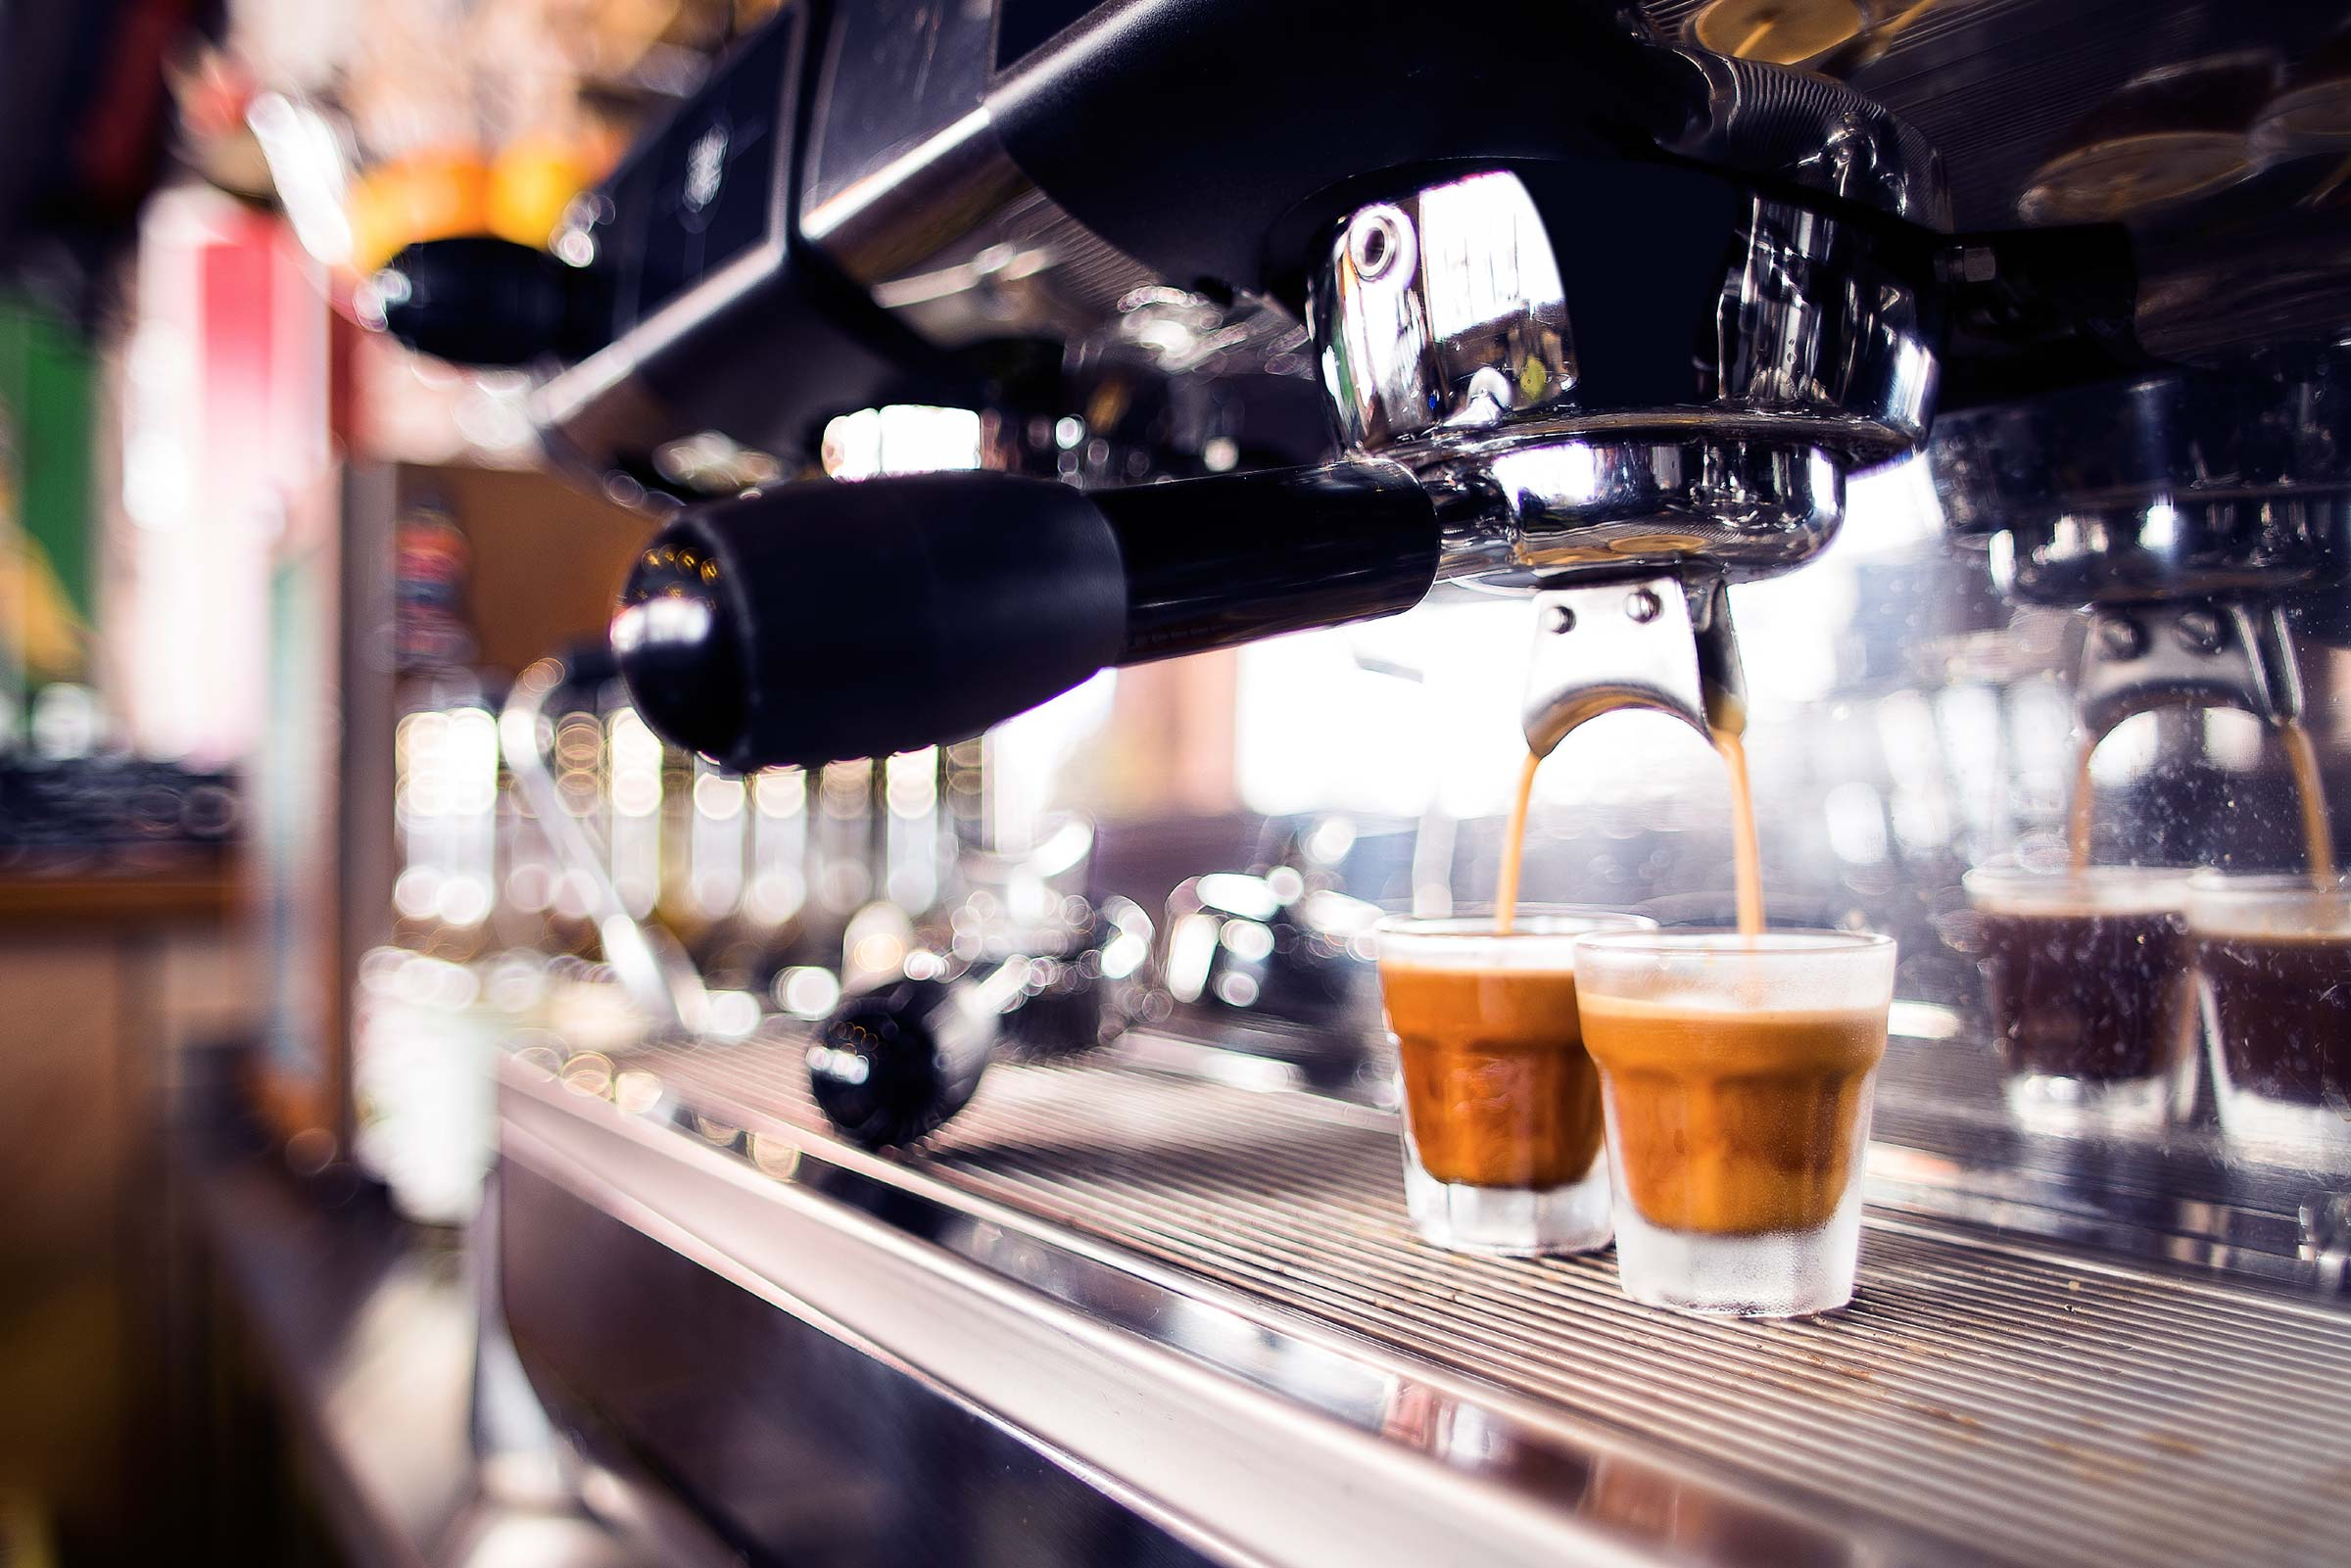 Cafe coffee machine in action making espresso. Penalty rates for Sunday workers have been upheld by the Federal Court.